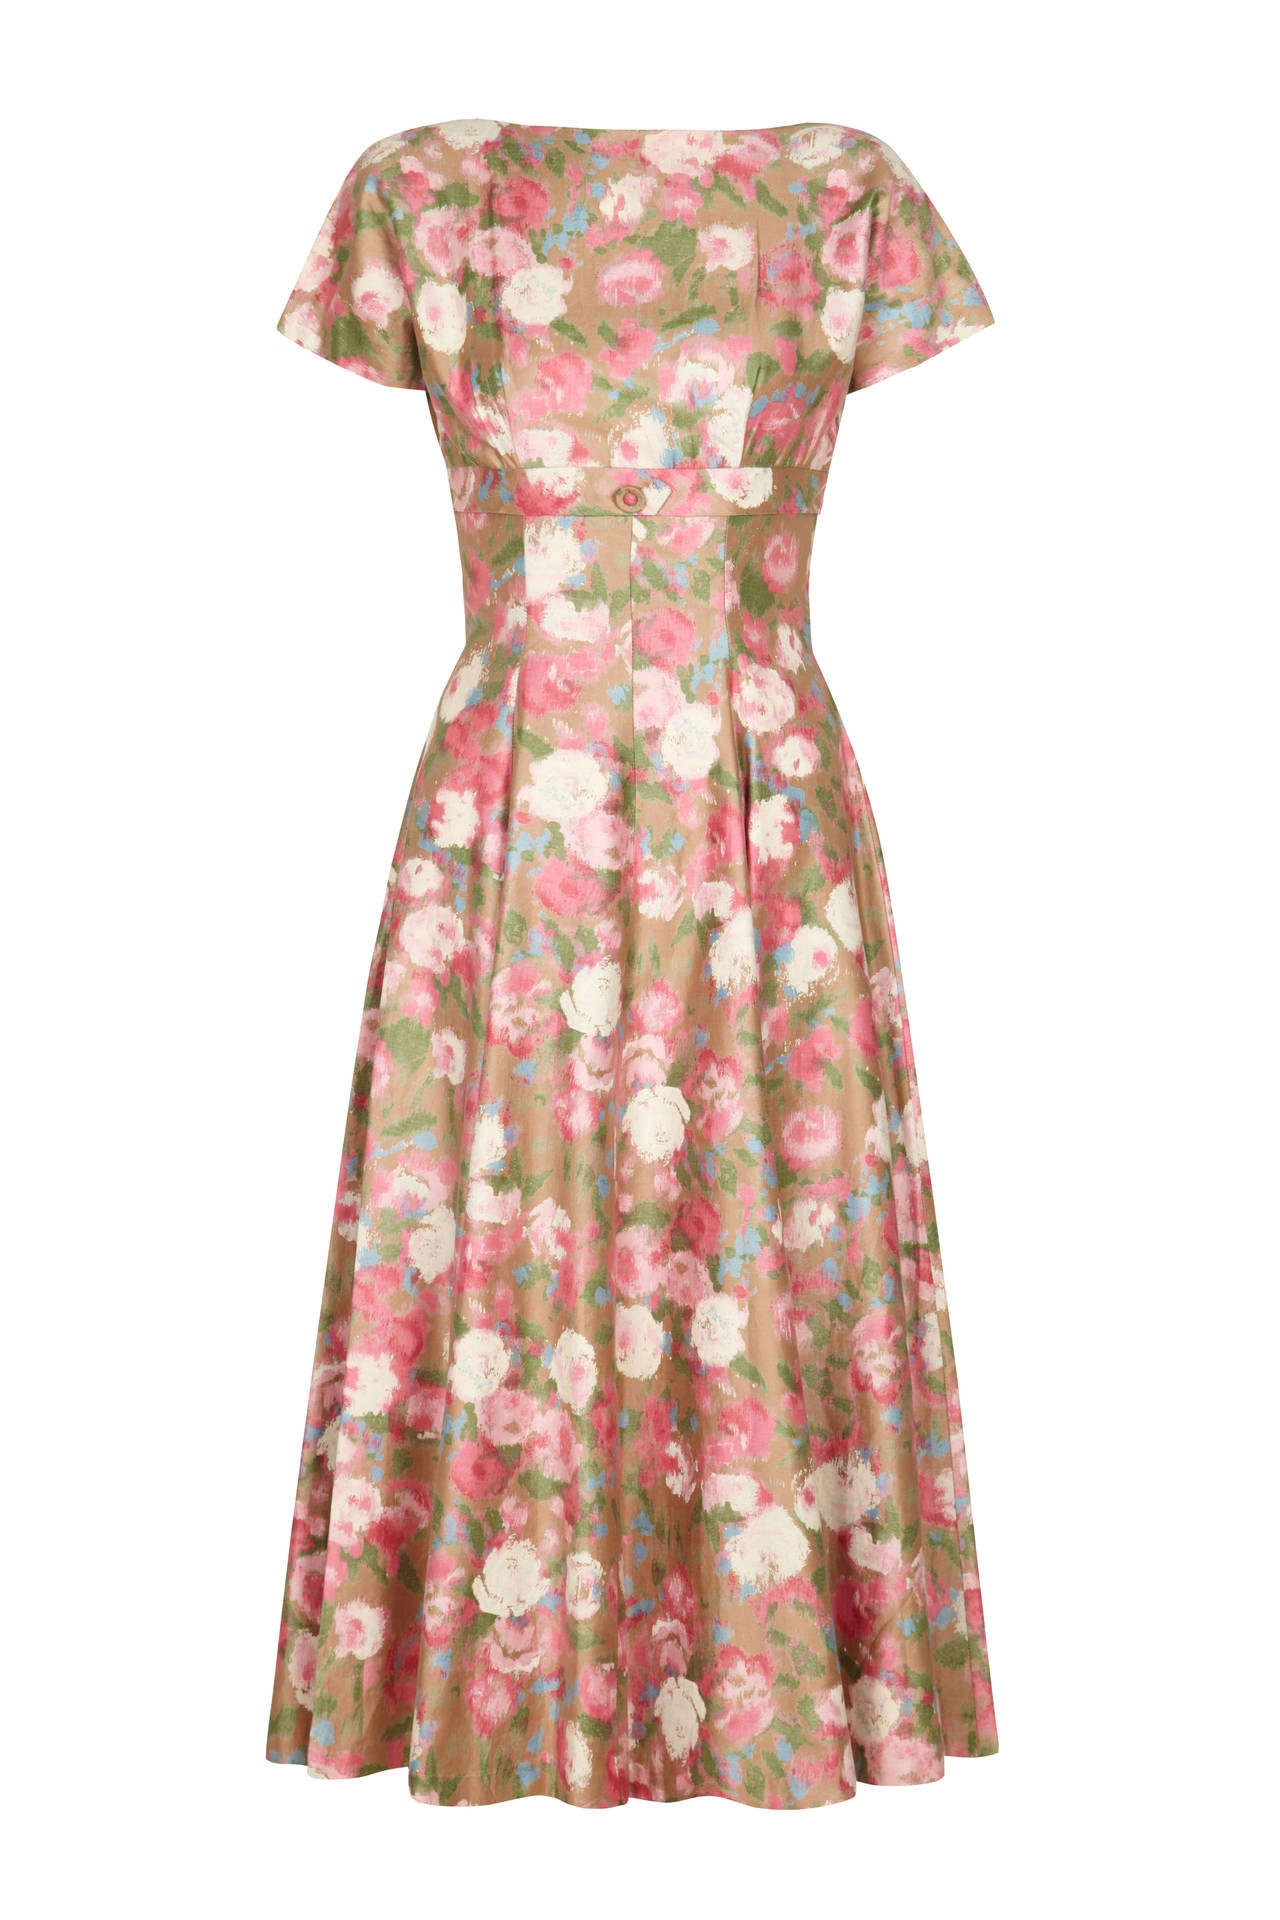 1950s Polished Cotton Floral Dress at 1stdibs